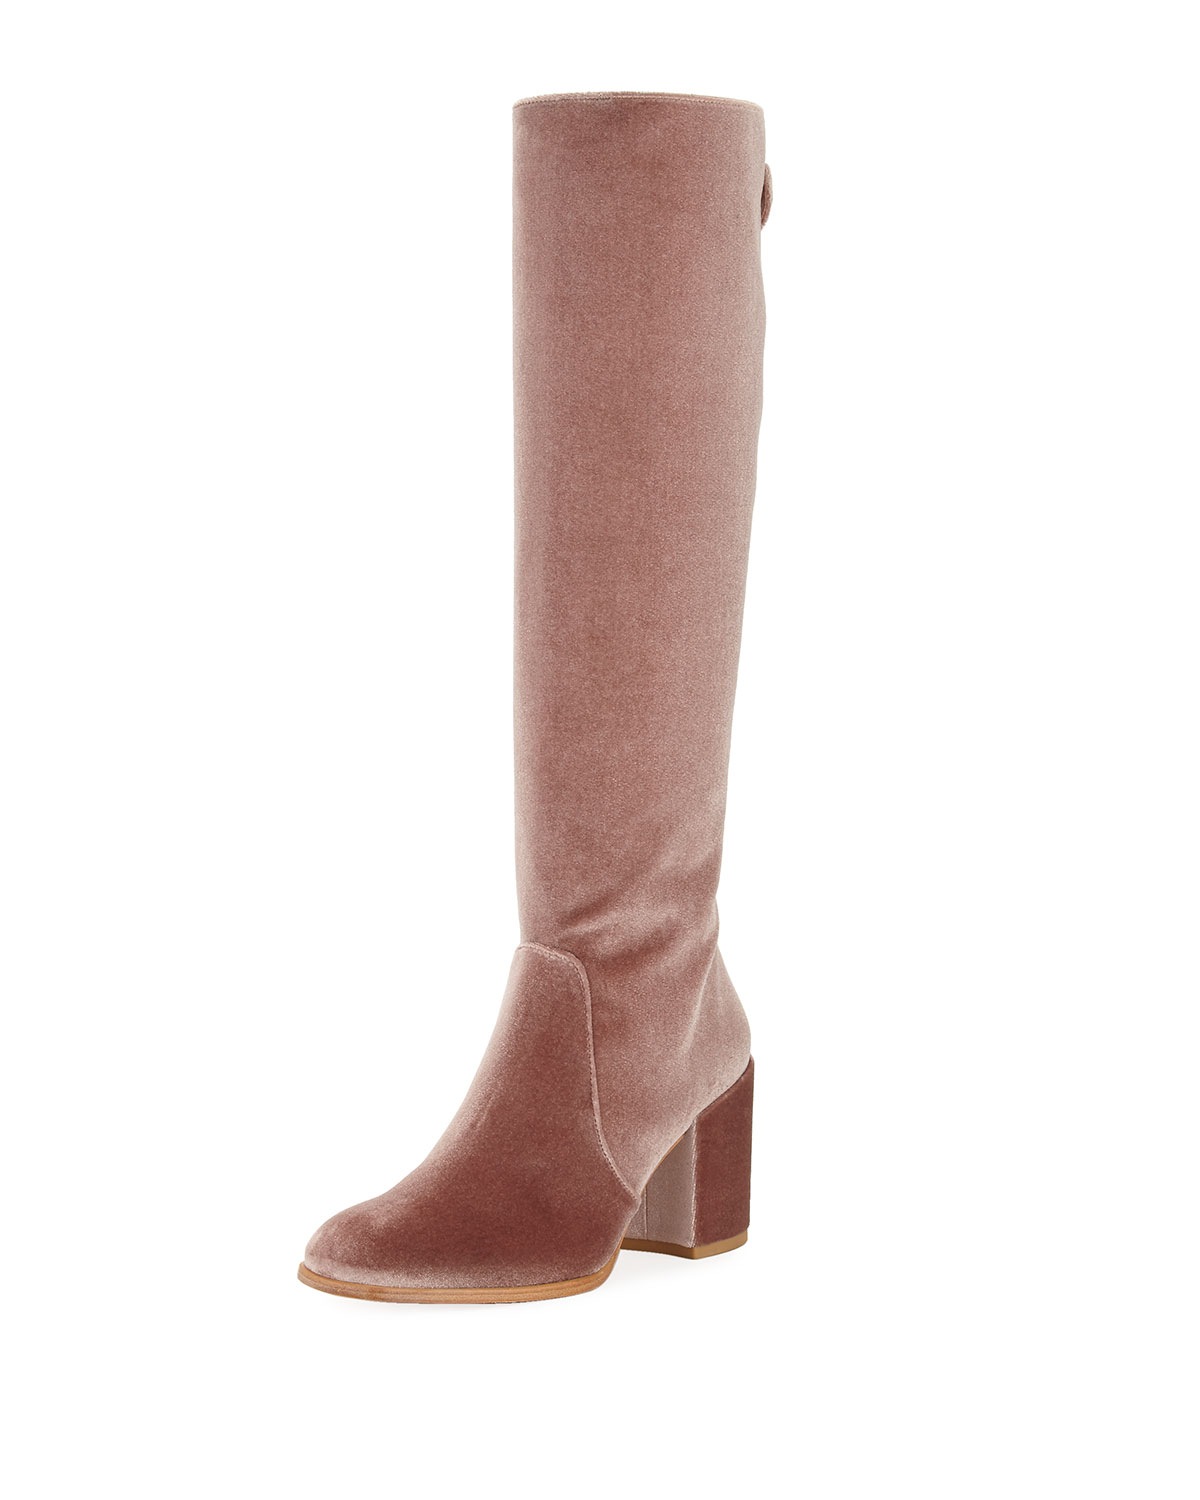 Suburb Velvet Knee Boot